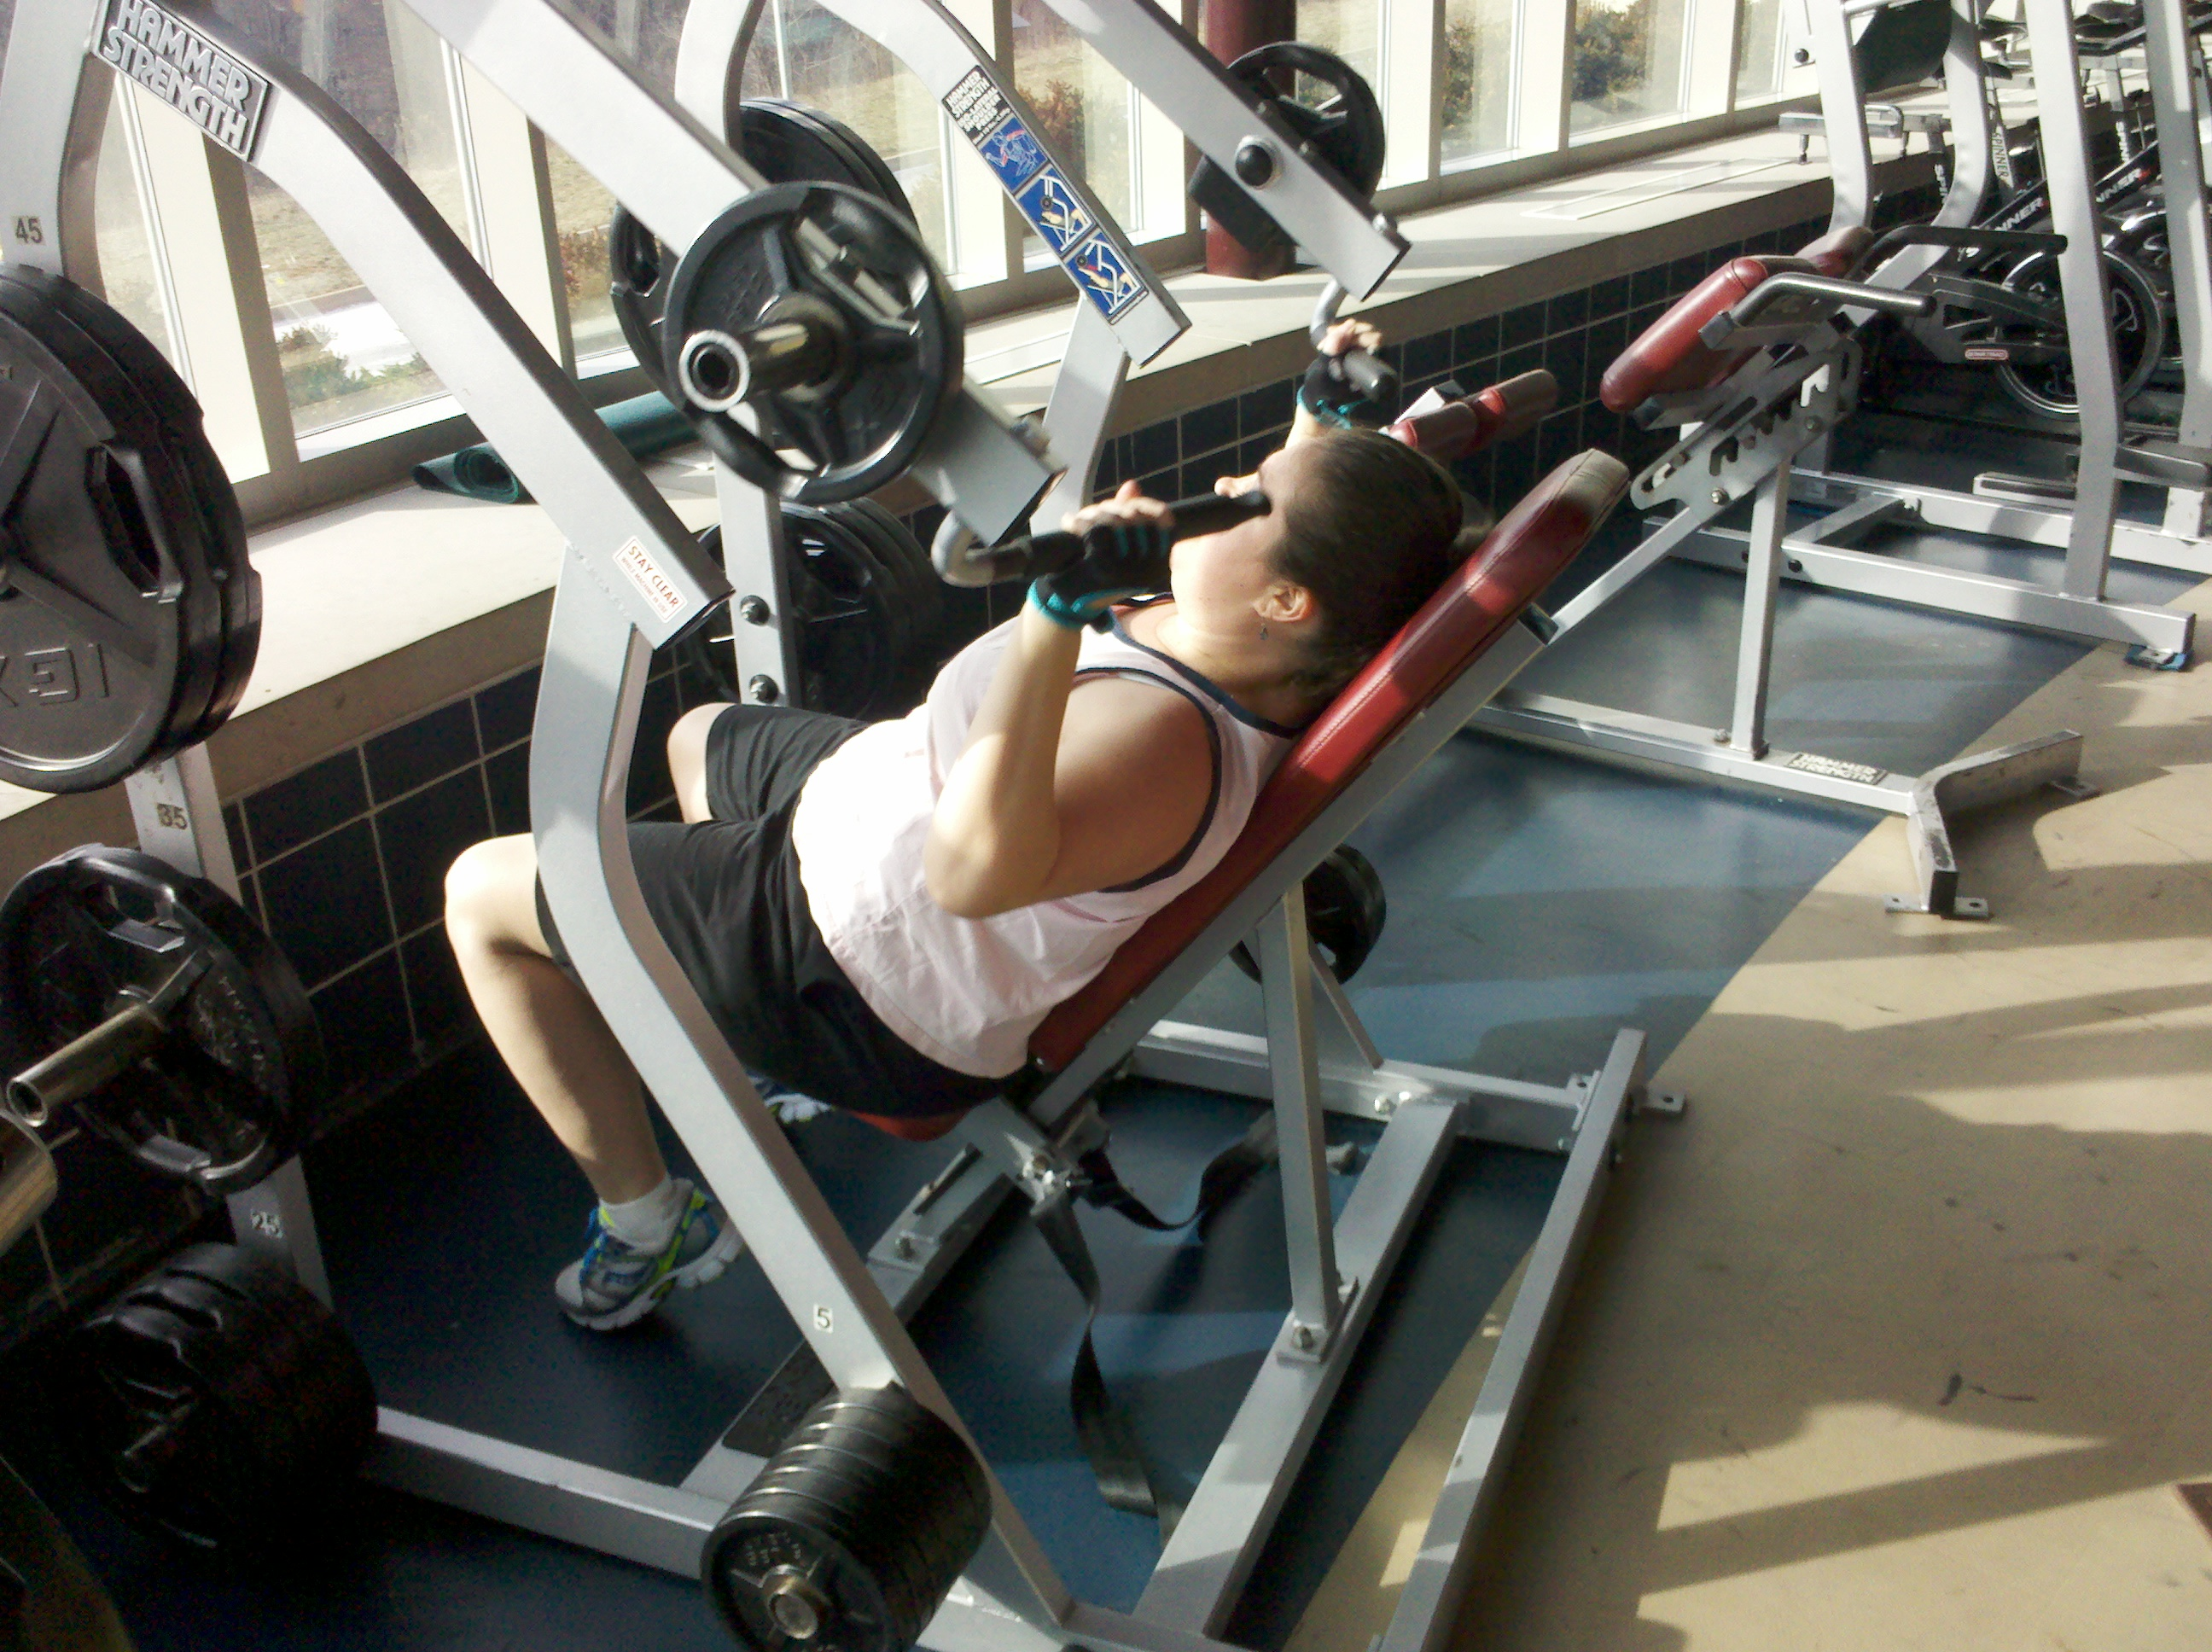 weight training gym personal trainer bench press goal